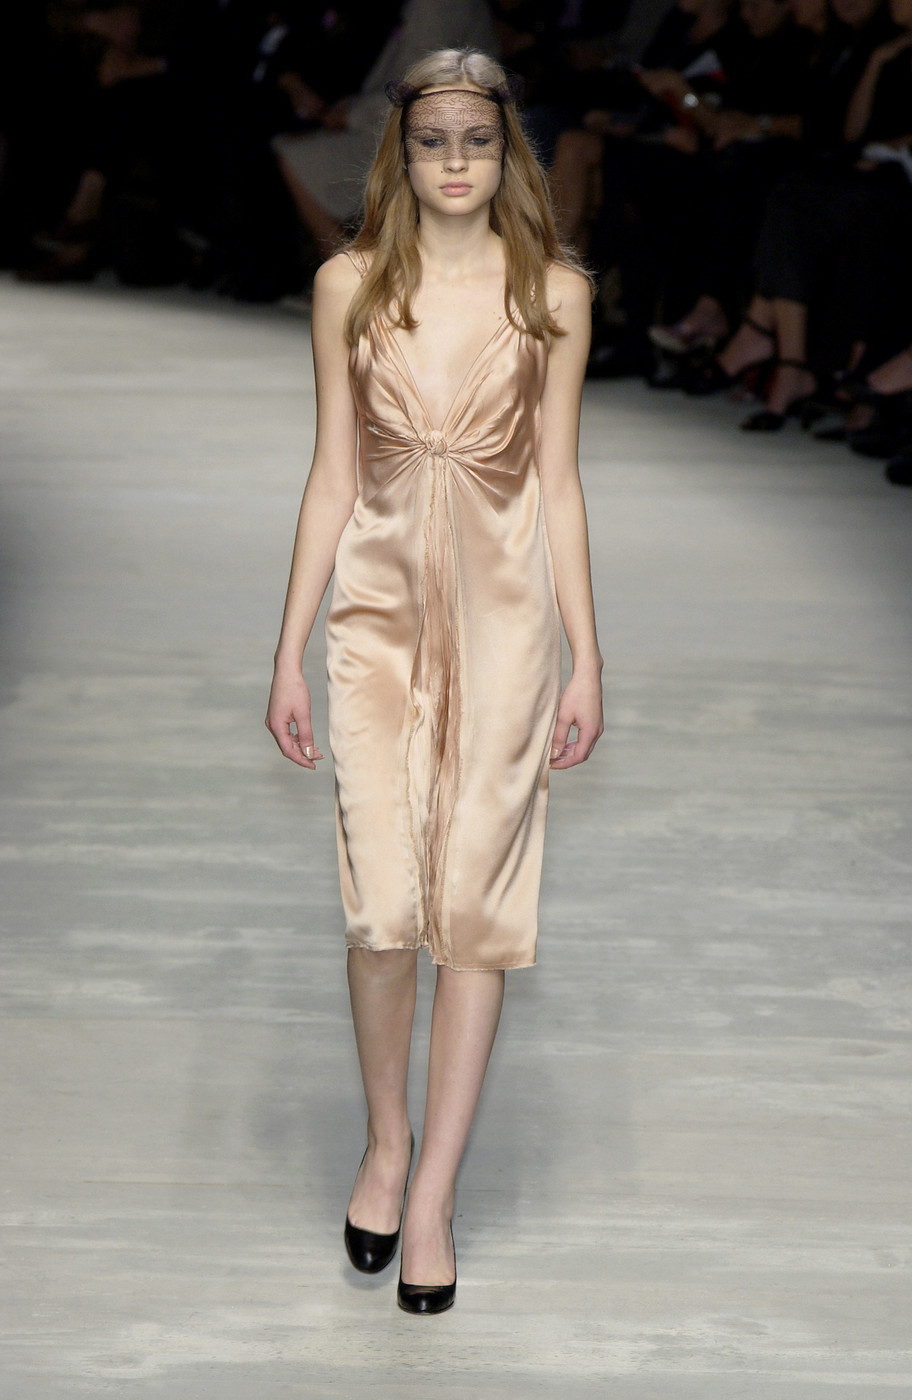 via fashioned by love | Lanvin Spring/Summer 2004